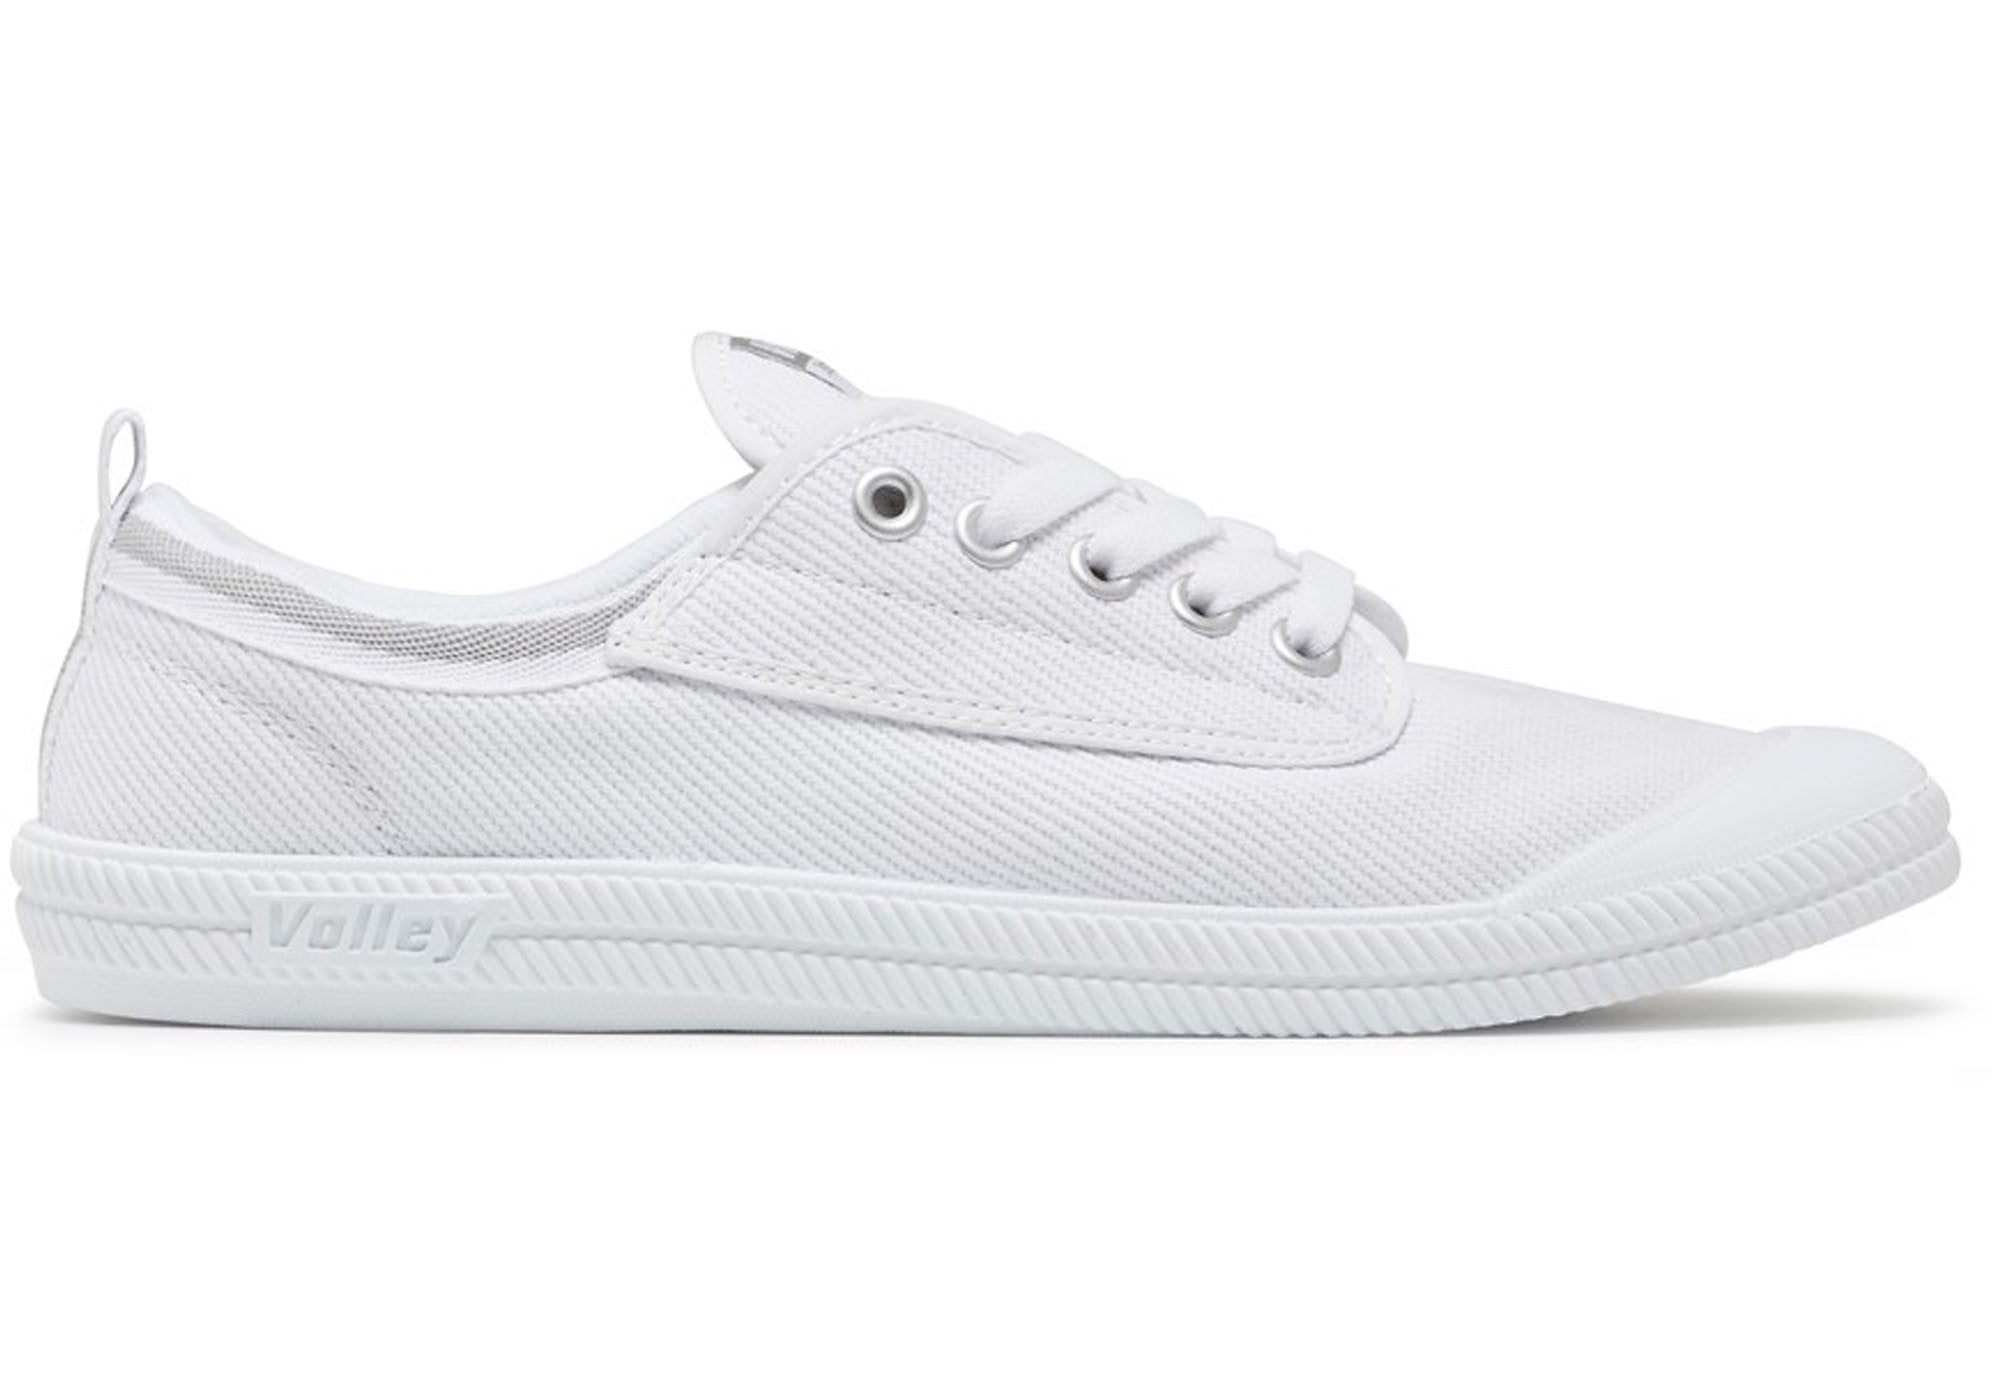 Volley International Womens Lace Up